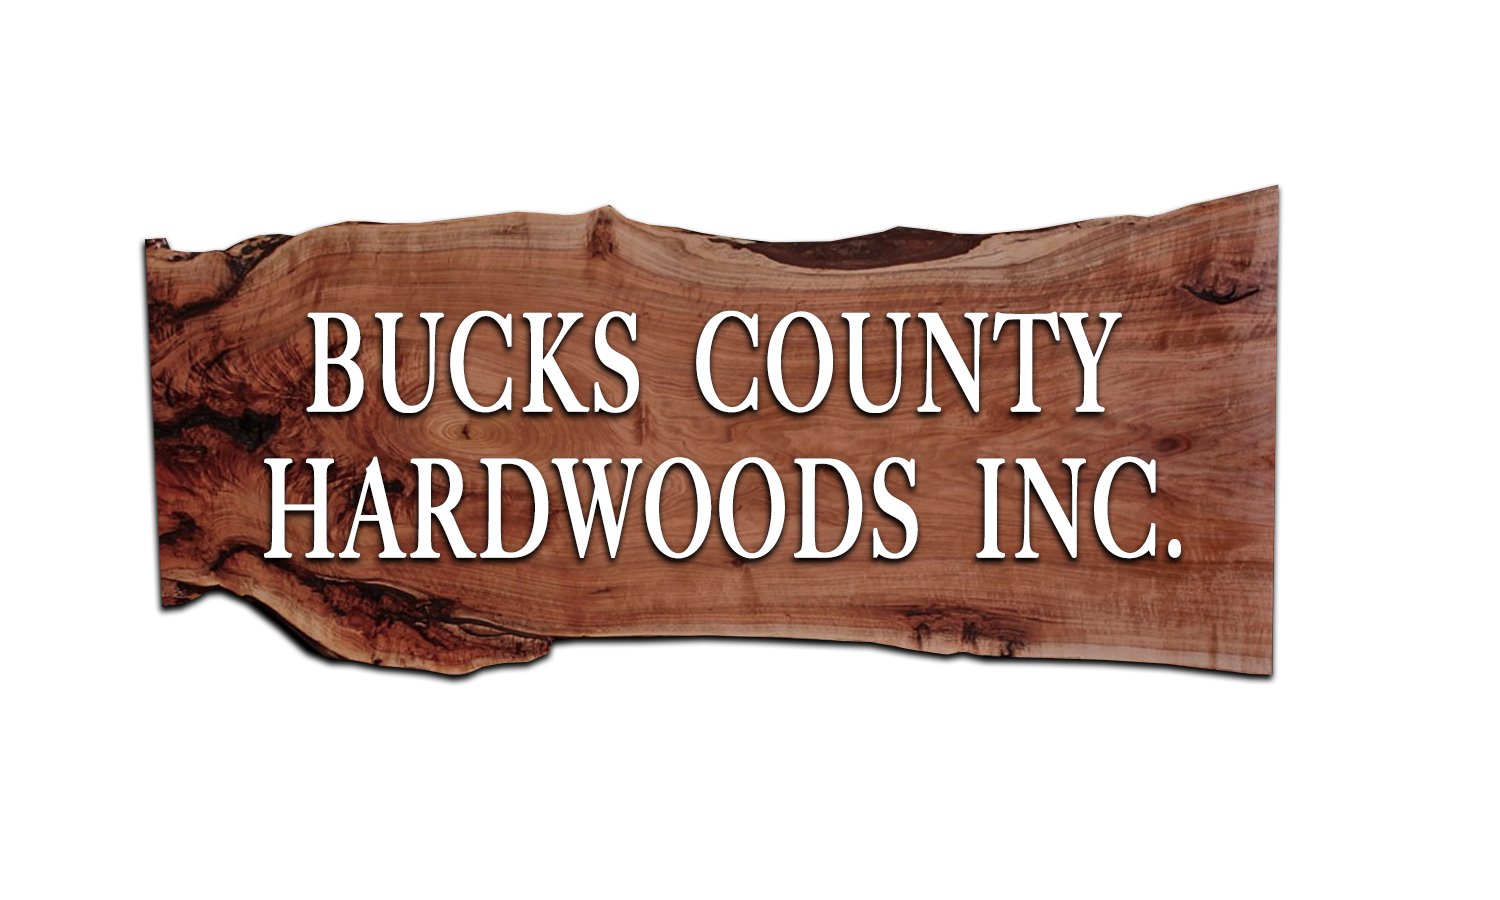 Bucks County Hardwoods - Live Edge Wood Slabs Doylestown, PA